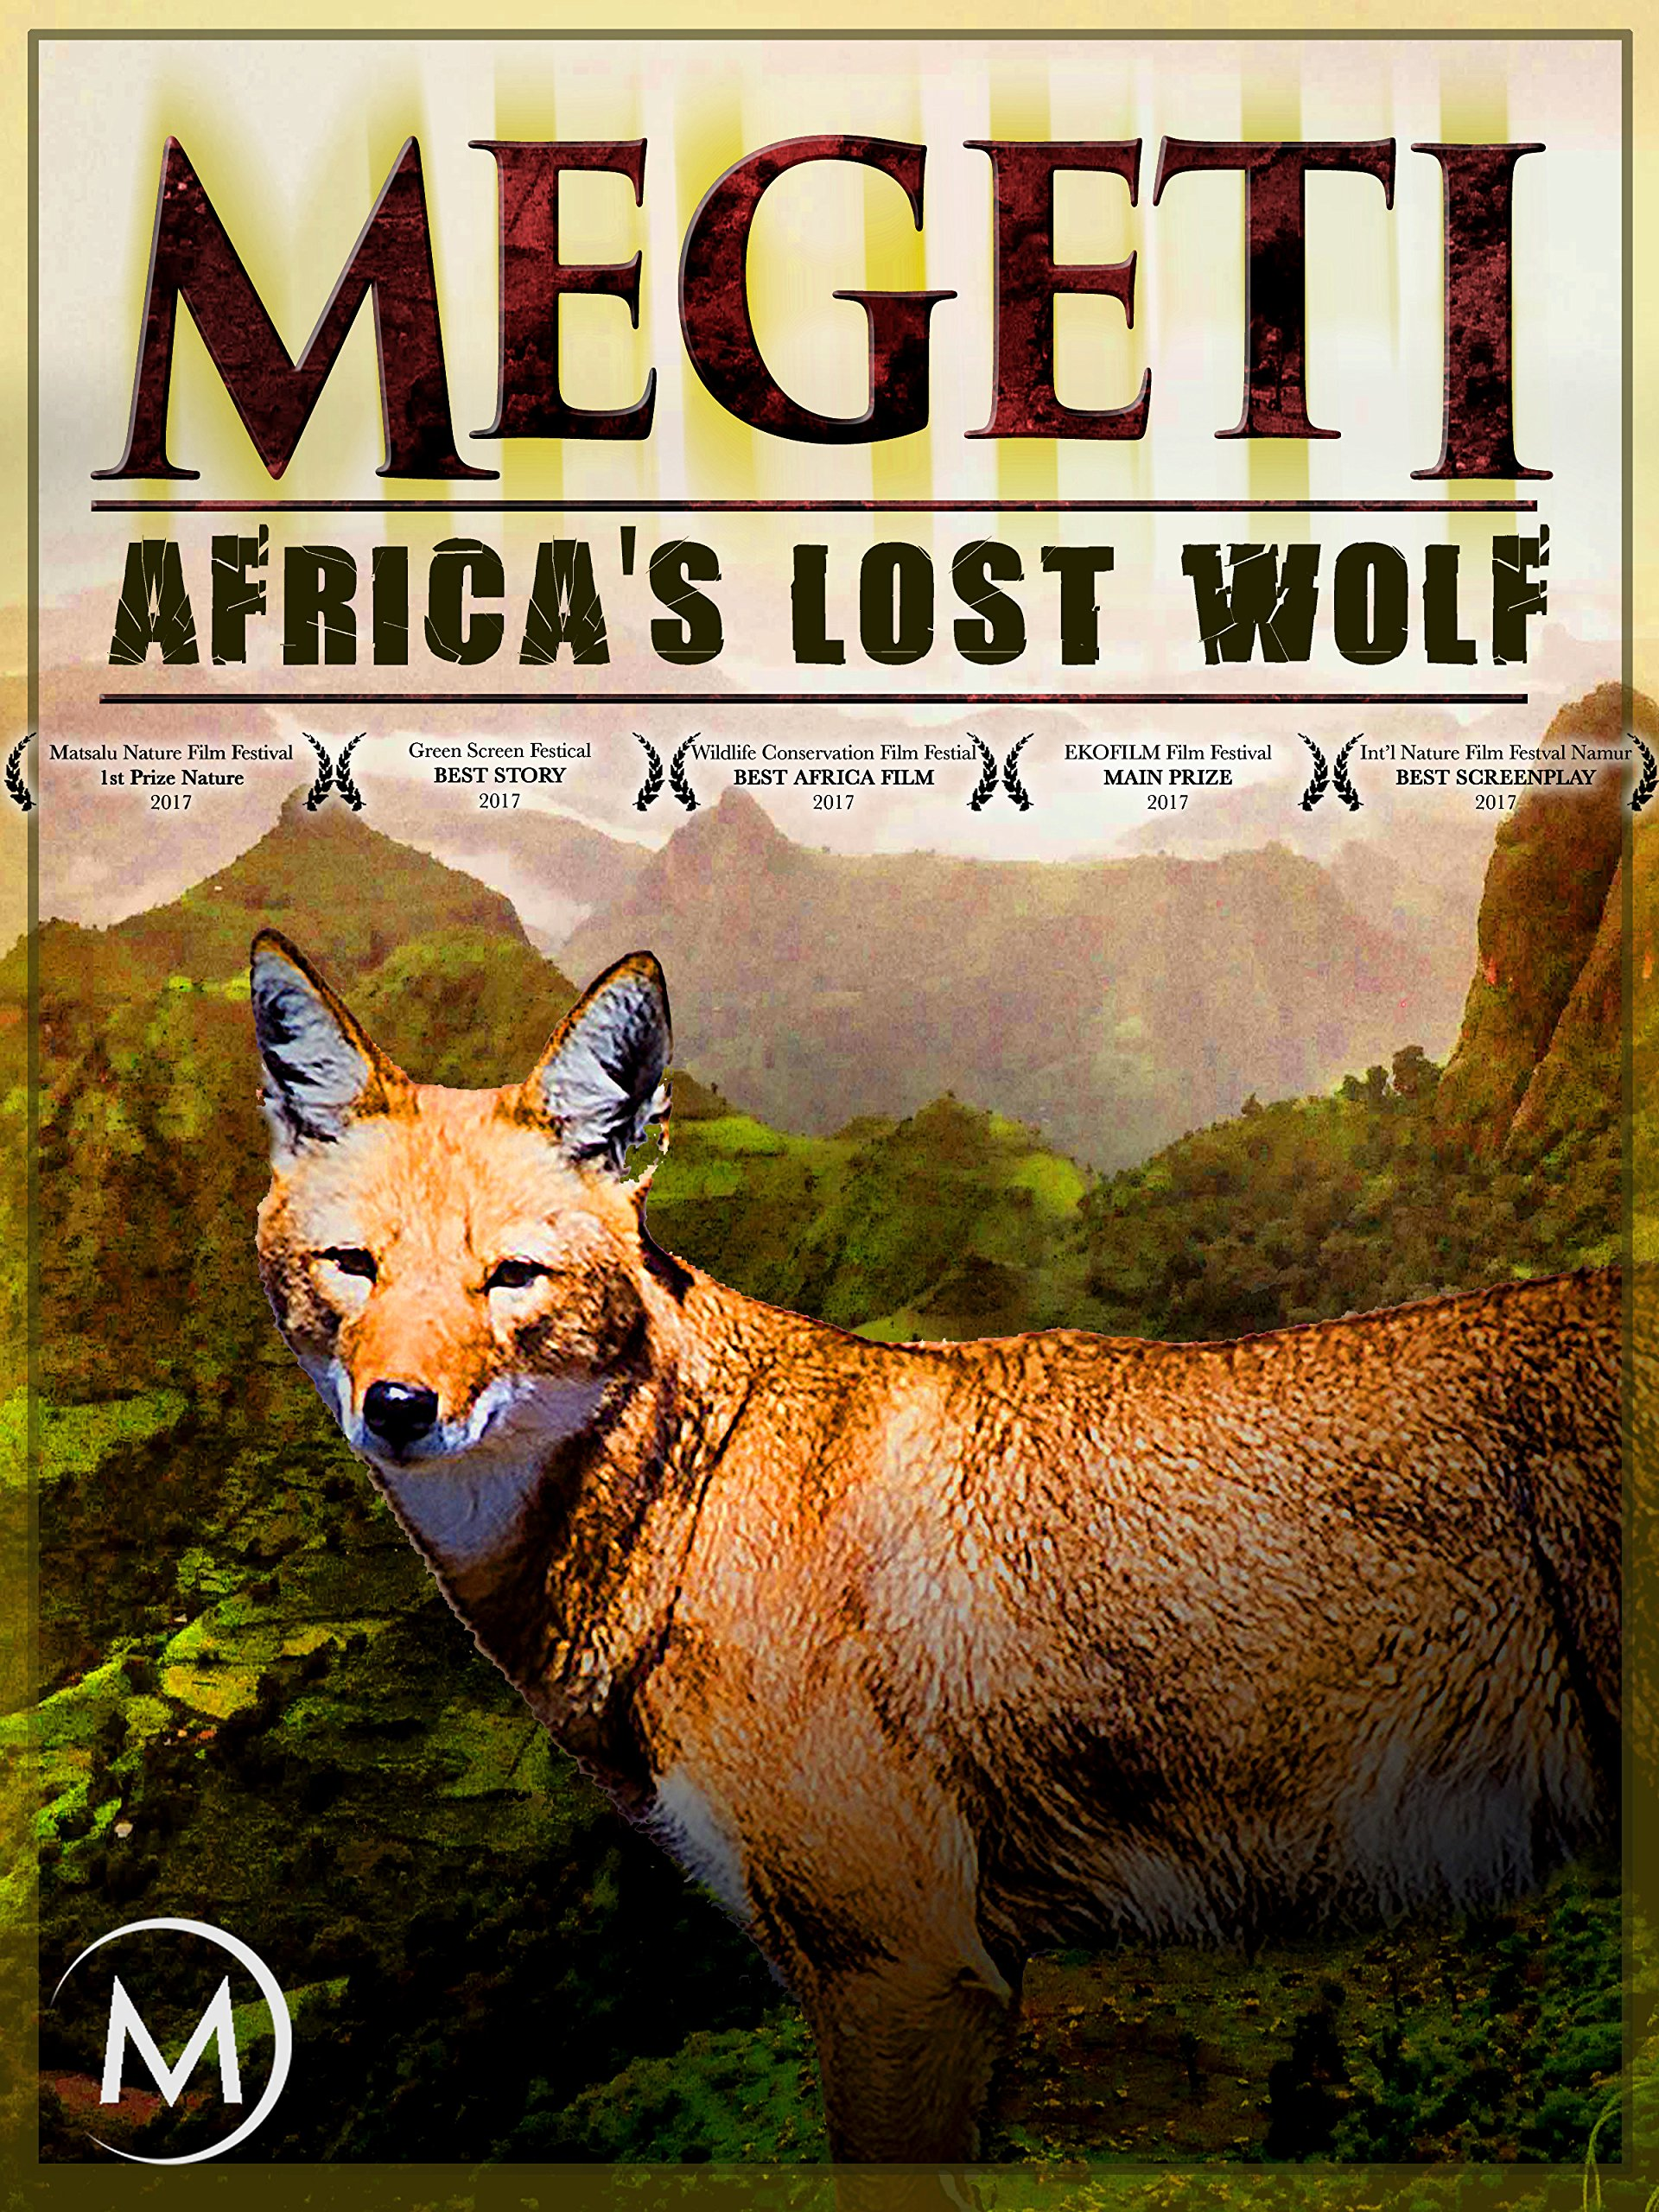 Megeti: Africa's Lost Wolf on Amazon Prime Instant Video UK